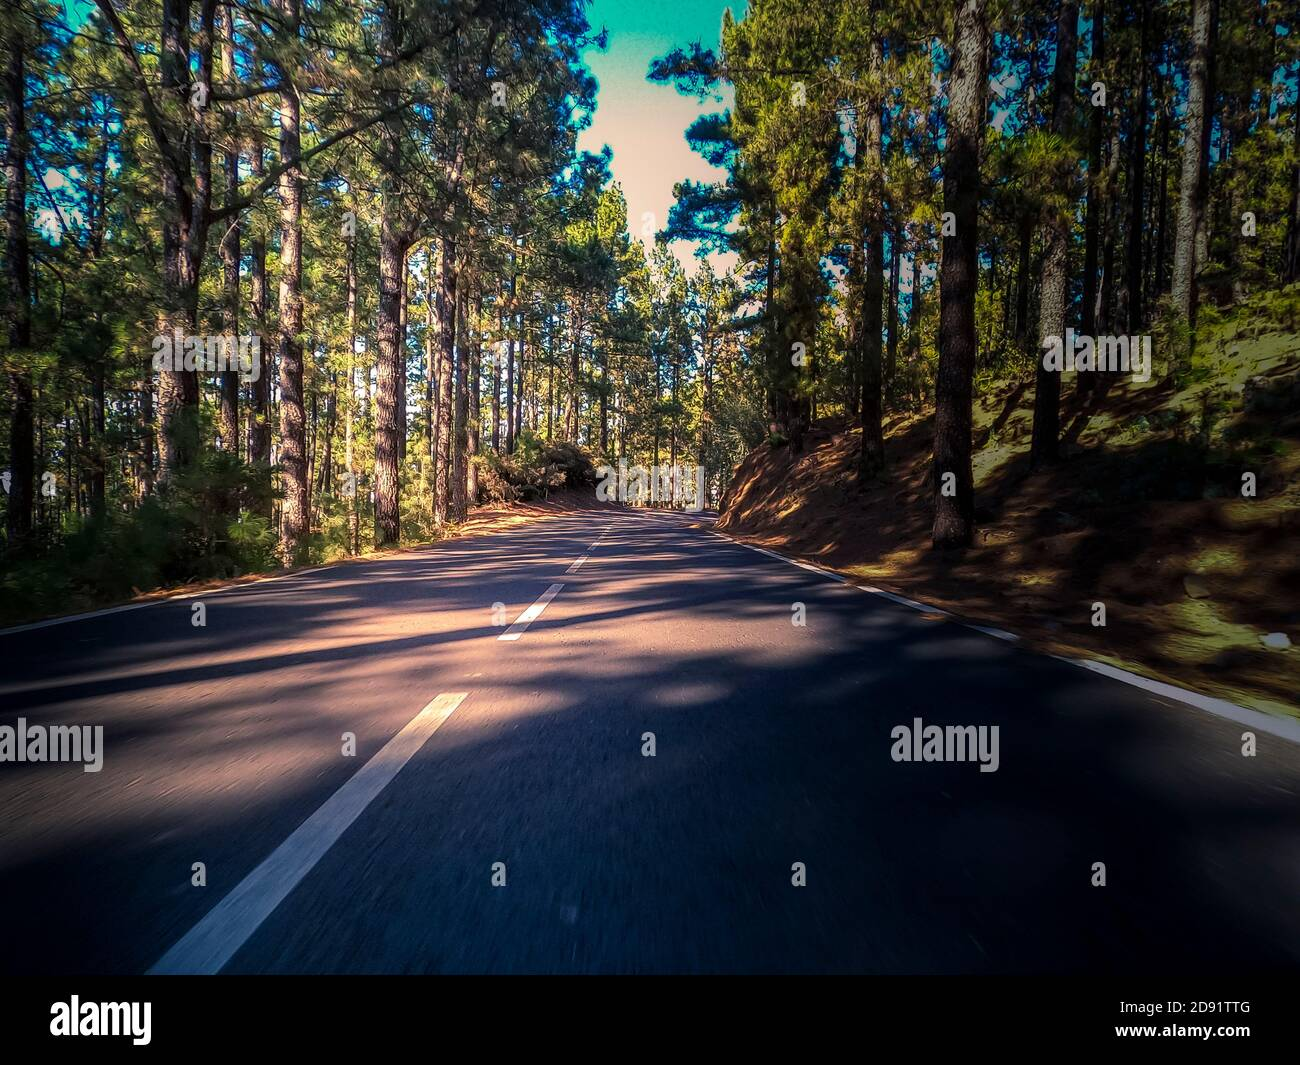 Long asphalt road ground view and travel concept - mountain and sky landscape - outdoor road trip in scenic place background Stock Photo